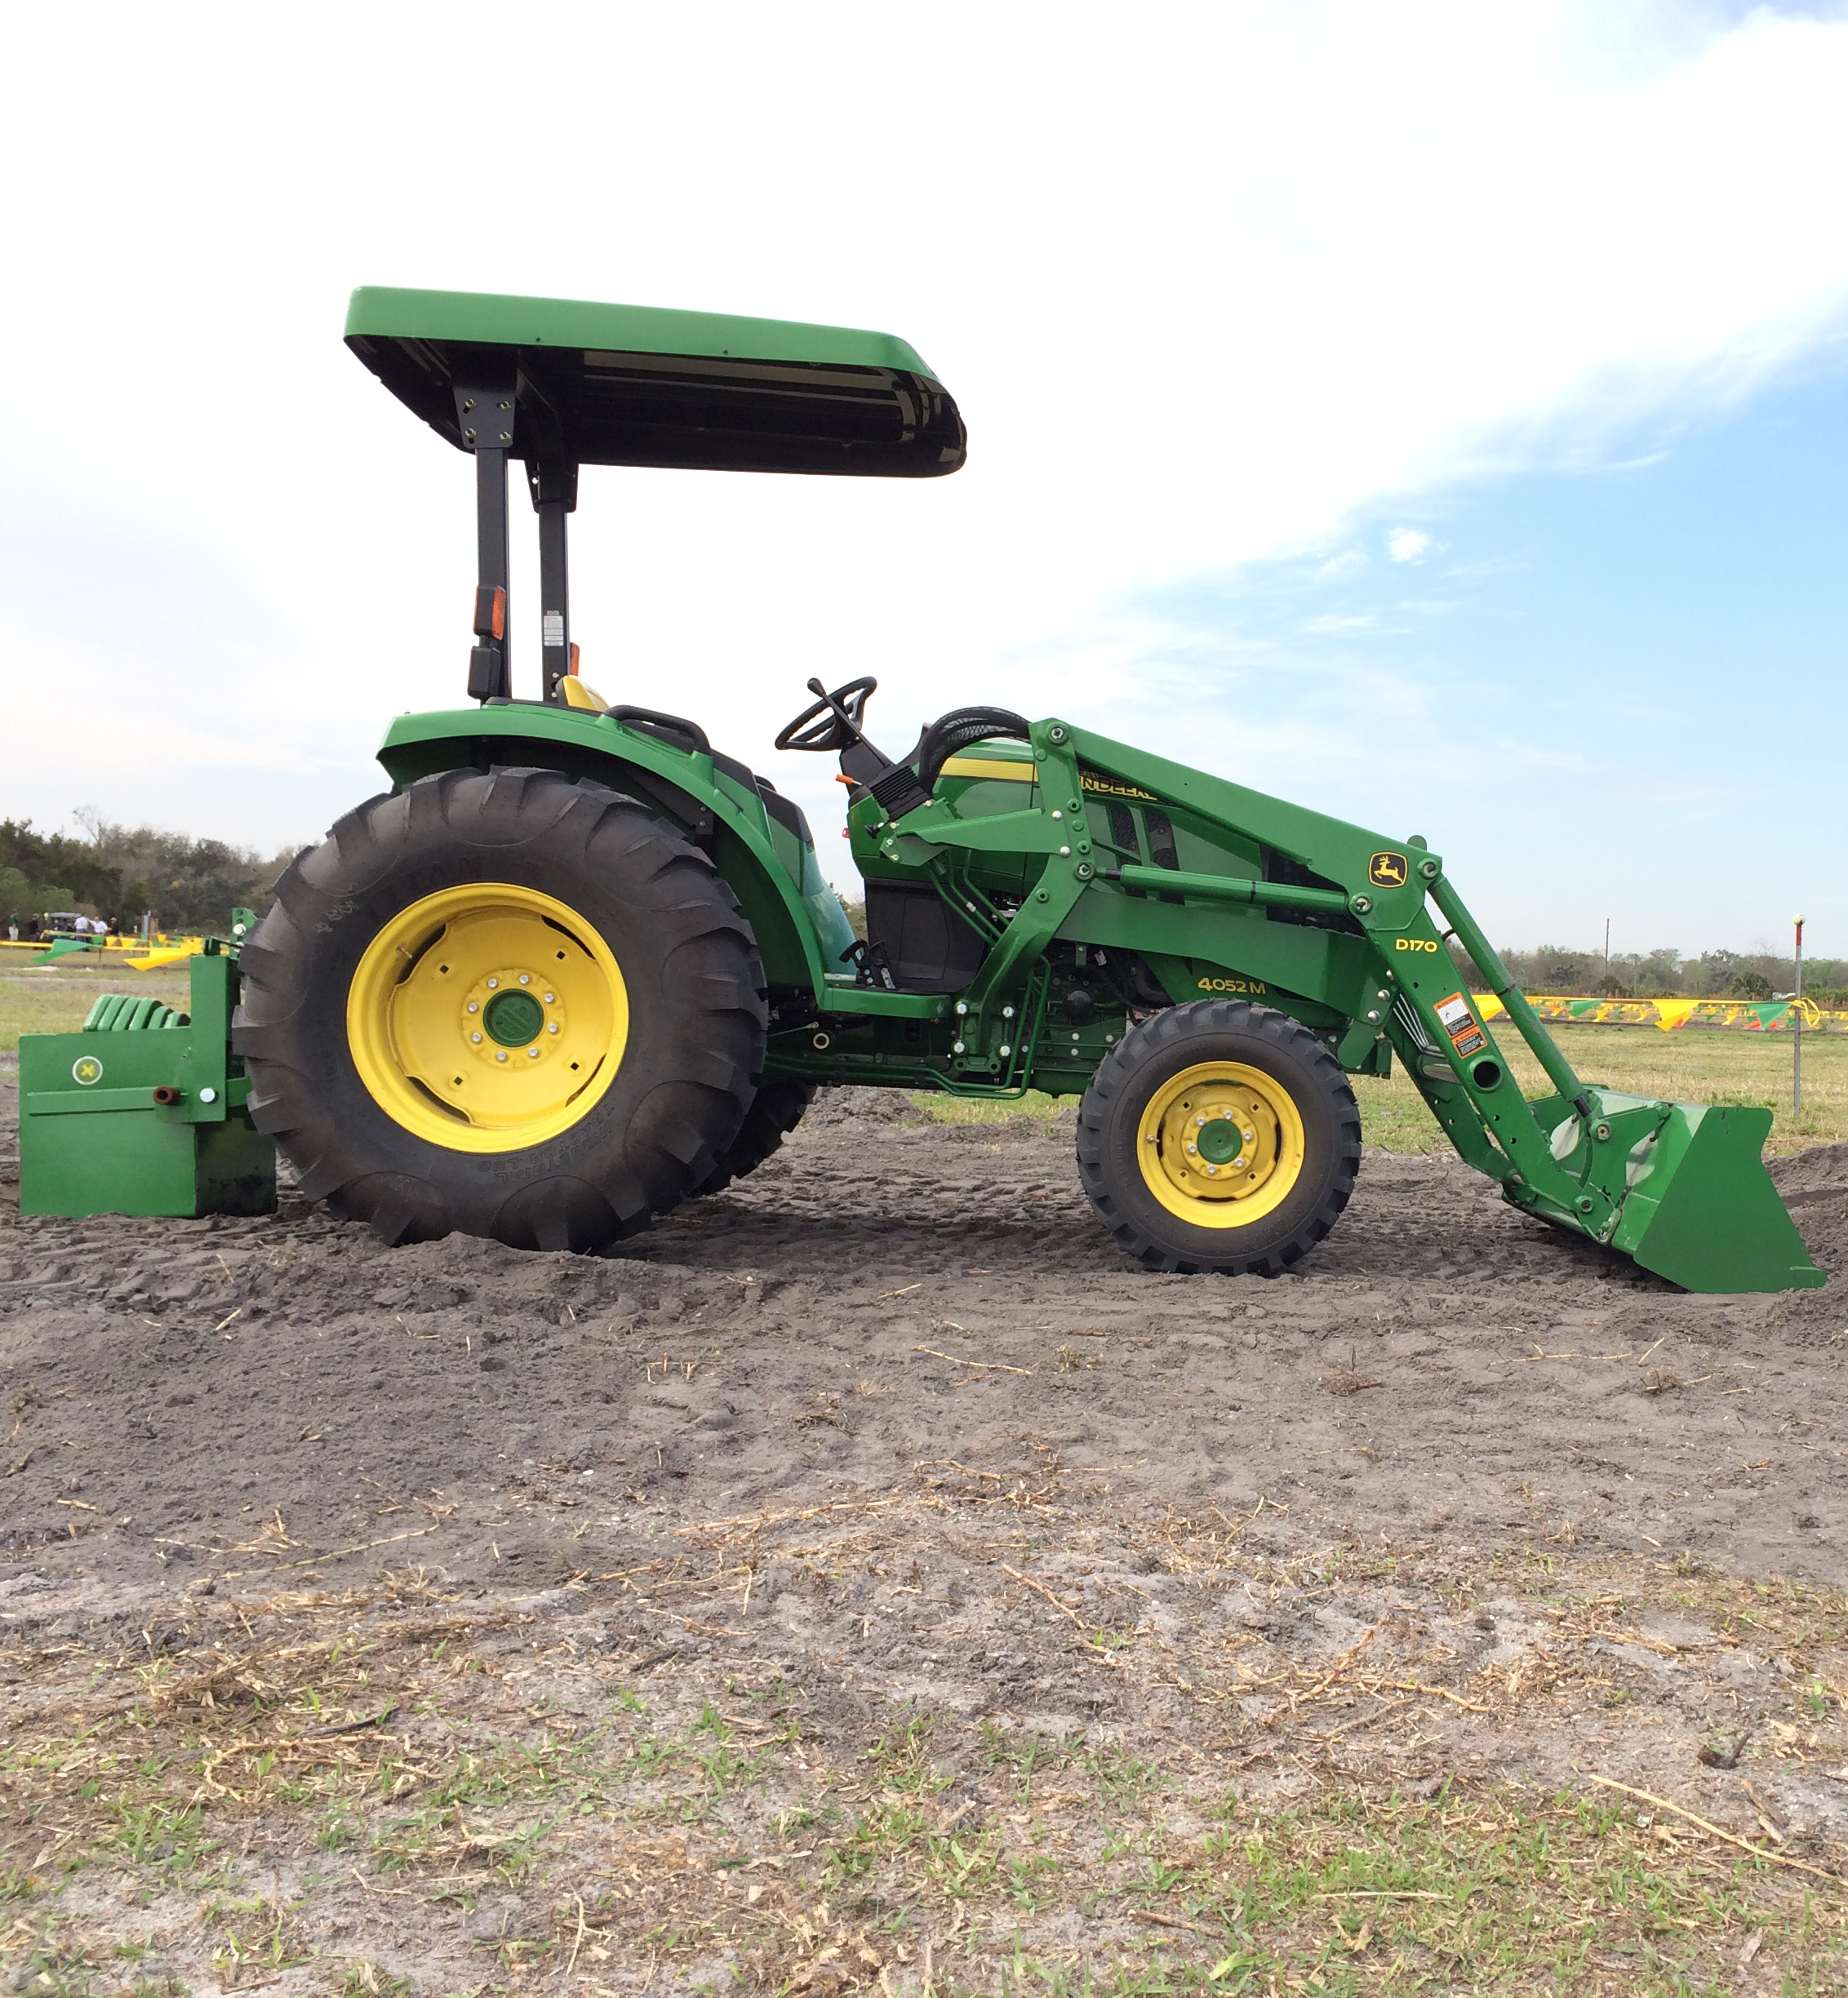 John Deere's 4052M, as well as 5 other 4 Family models, will be ...